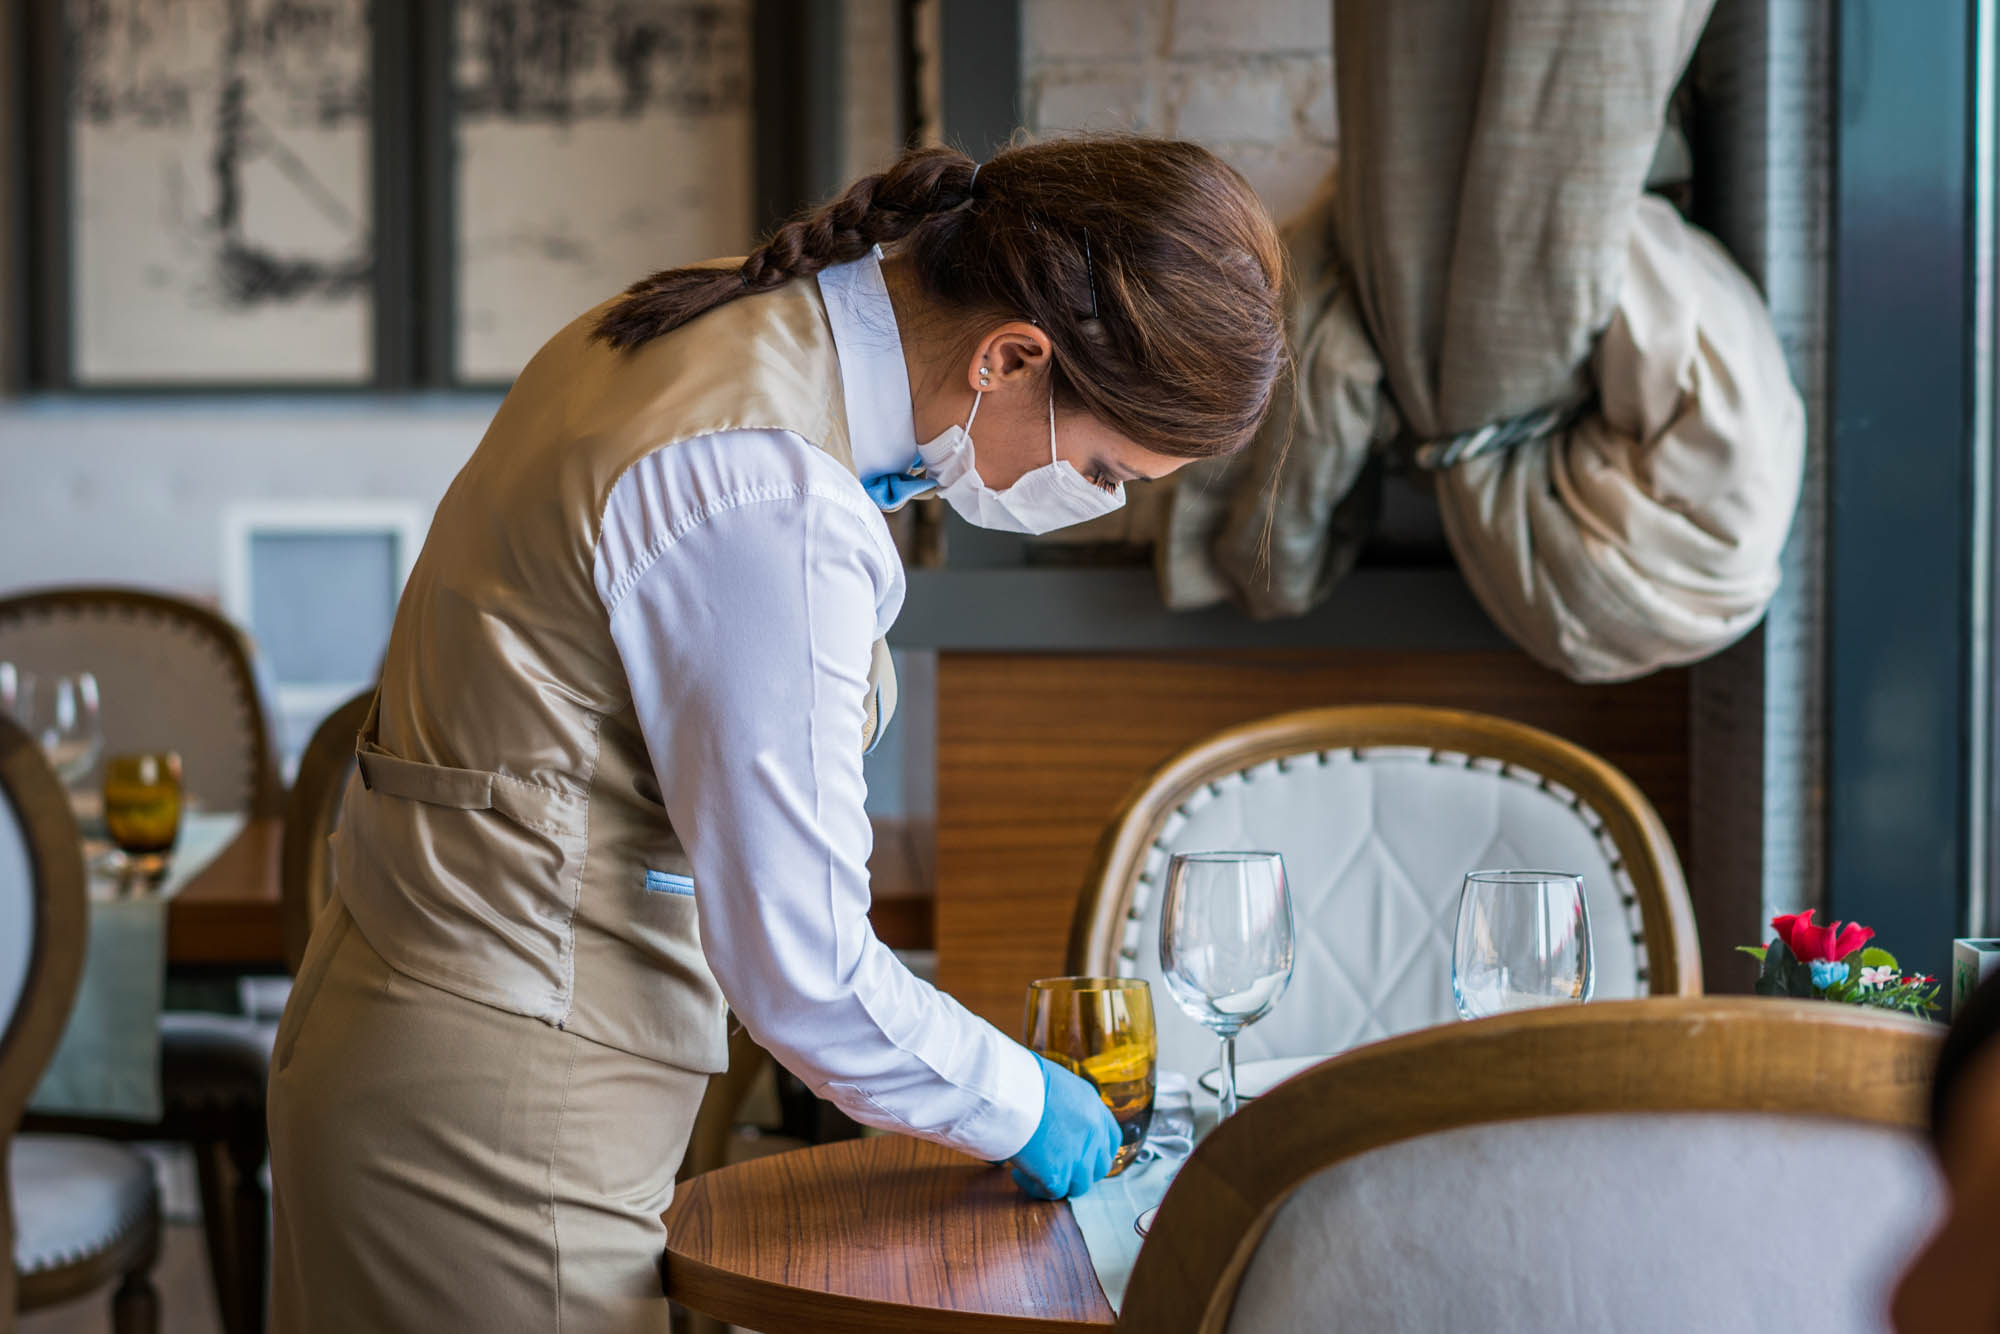 Waitress with a mask disinfects the table